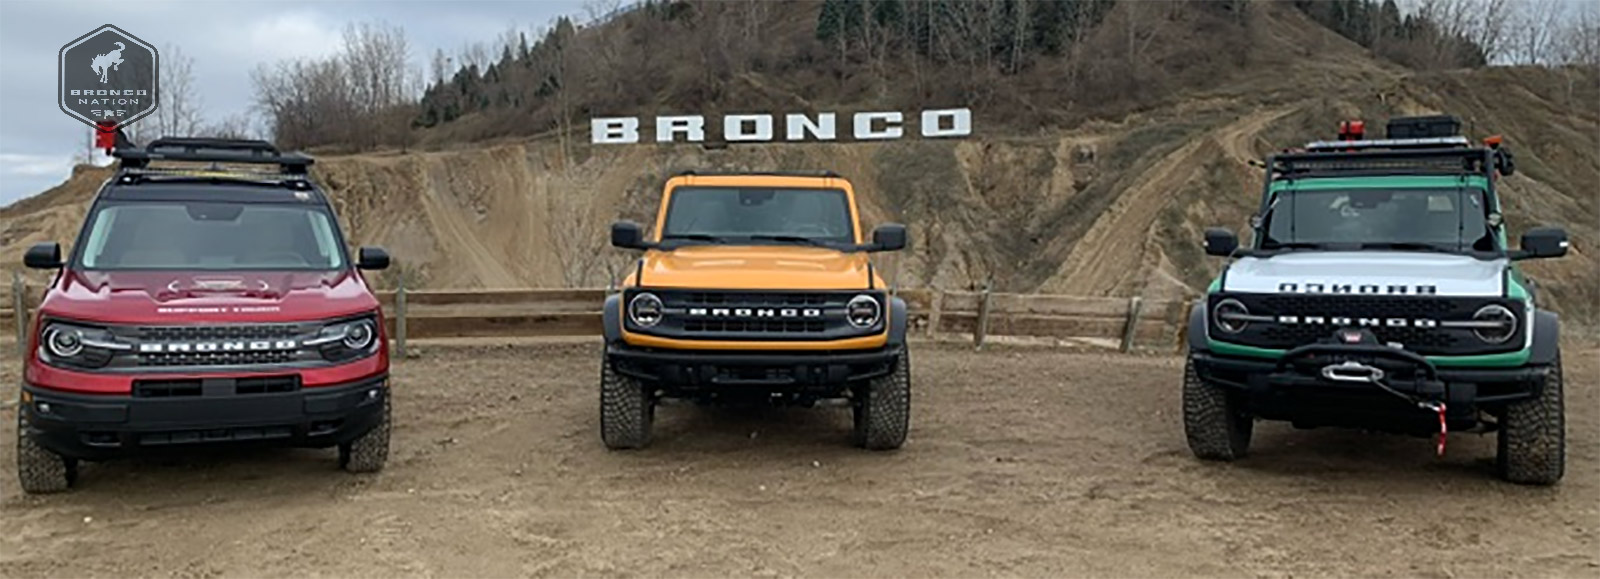 5 Questions Answered About the 2021 Ford Bronco Sport